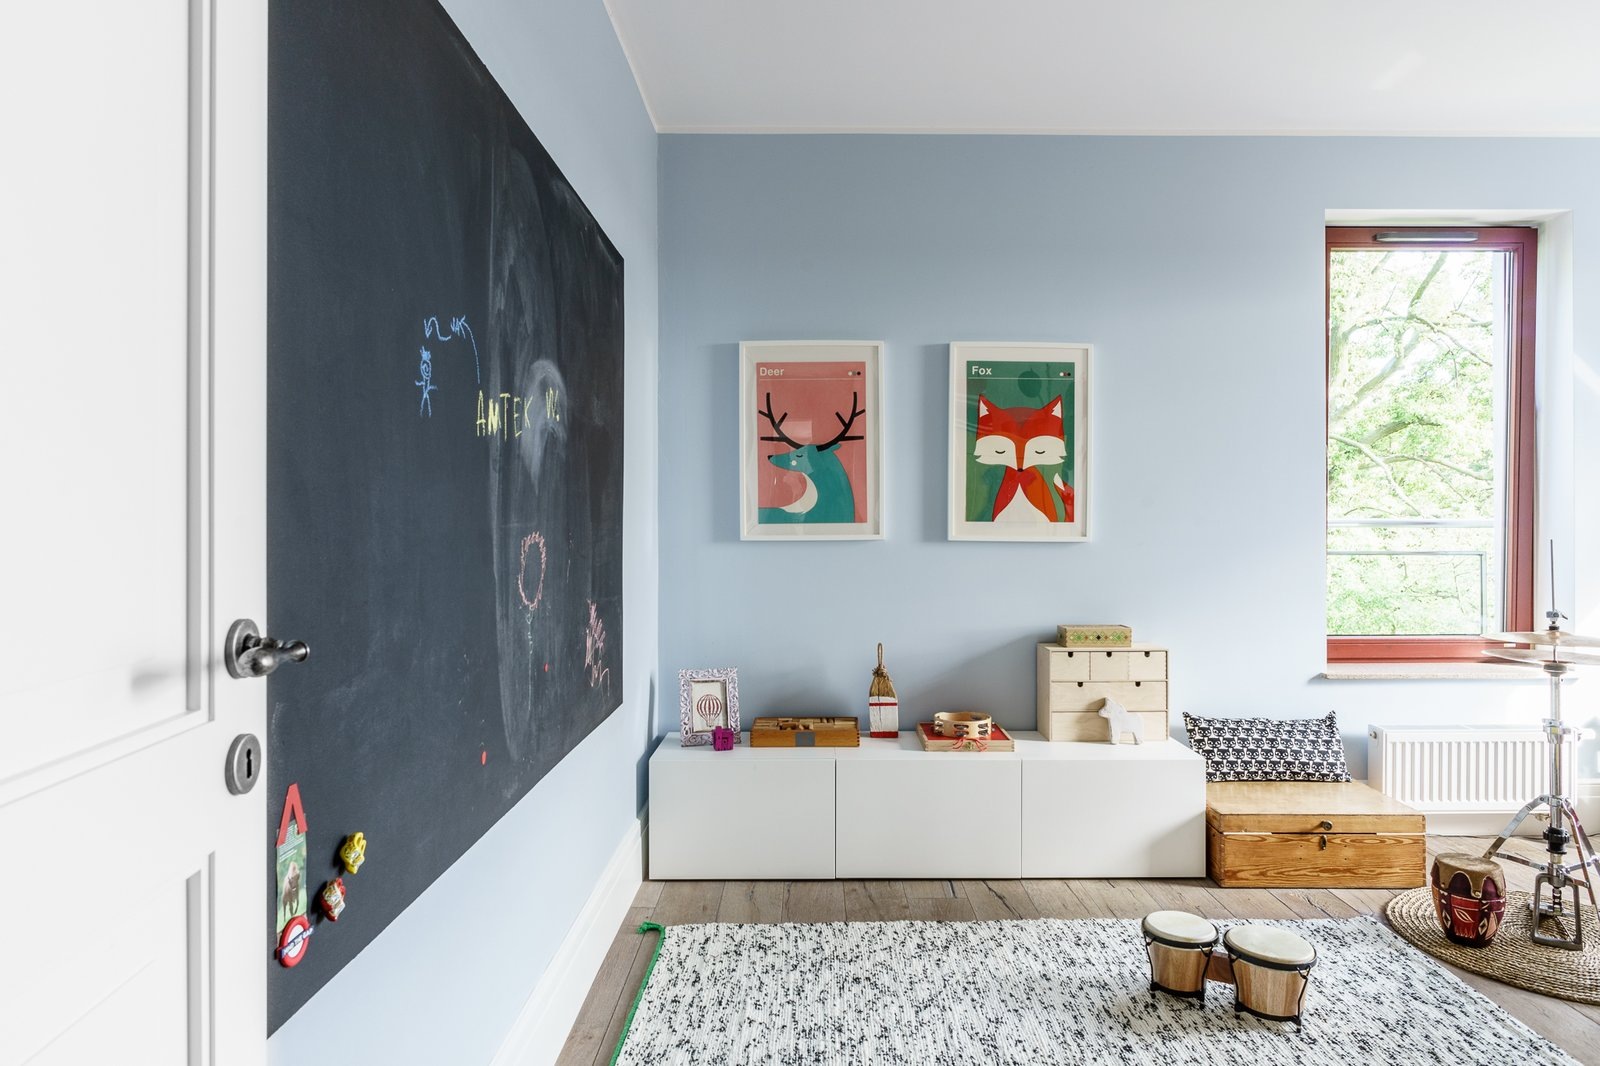 Tagged: Kids Room, Playroom, Toddler Age, Storage, Light Hardwood Floor, Pre-Teen Age, and Neutral Gender.  Loft in Poland by Lucyna Kołodziejska | INTERIORS FACTORY